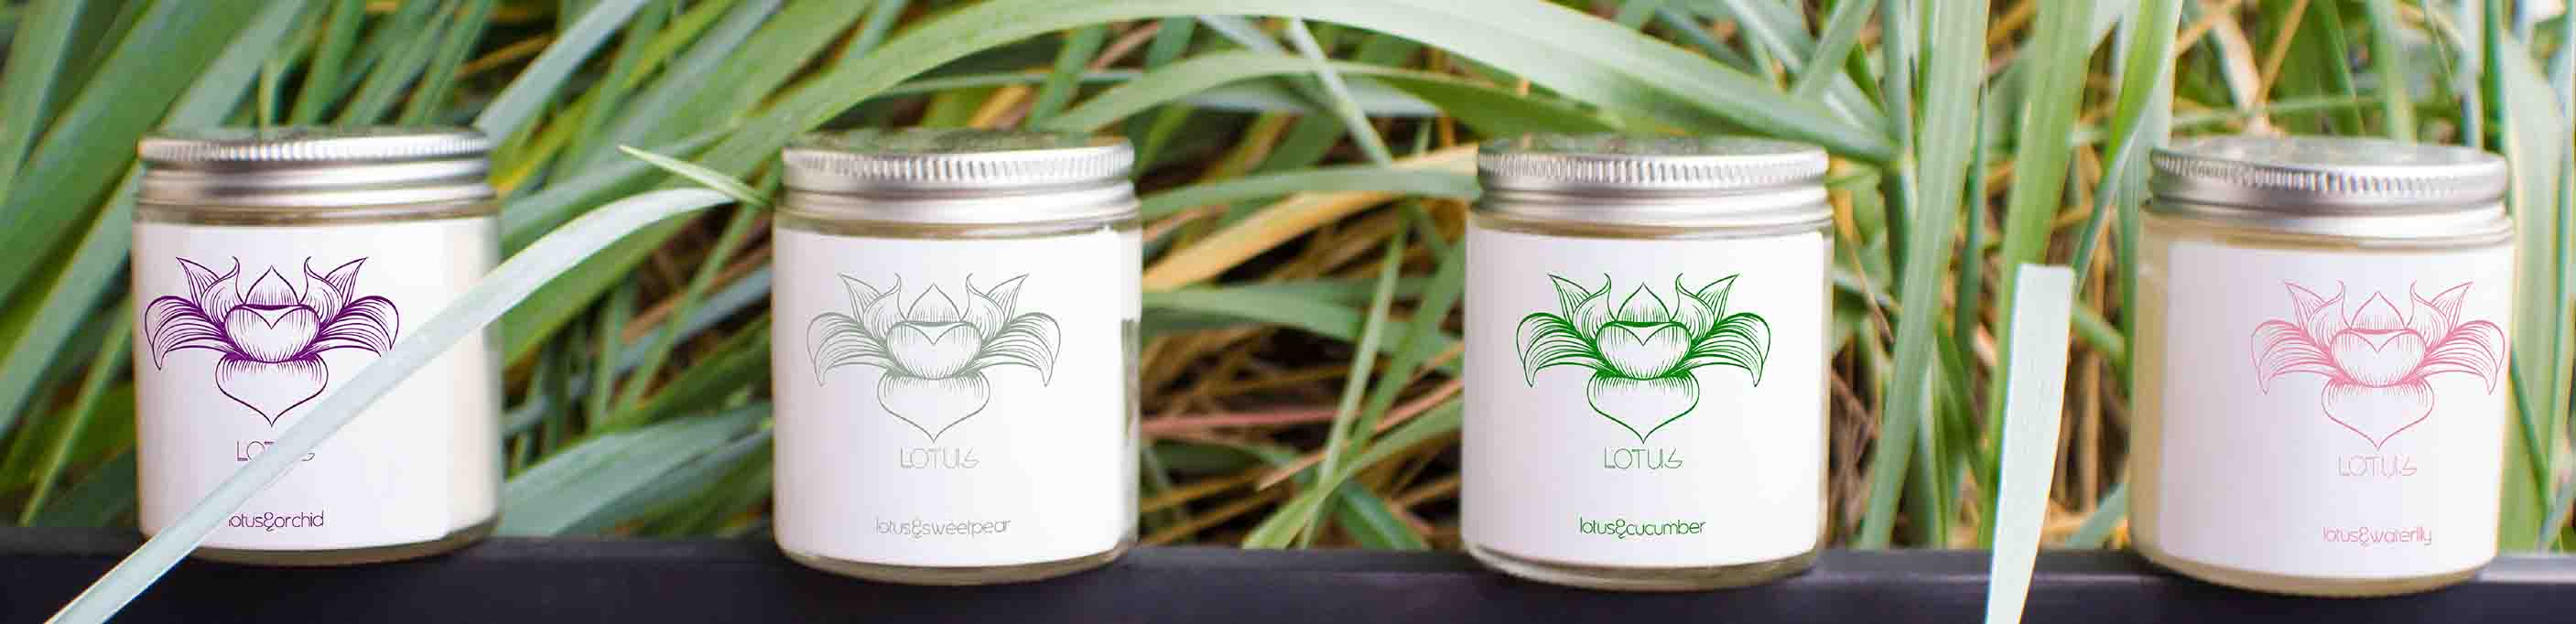 Candle Jars - Larger Sizes - 405